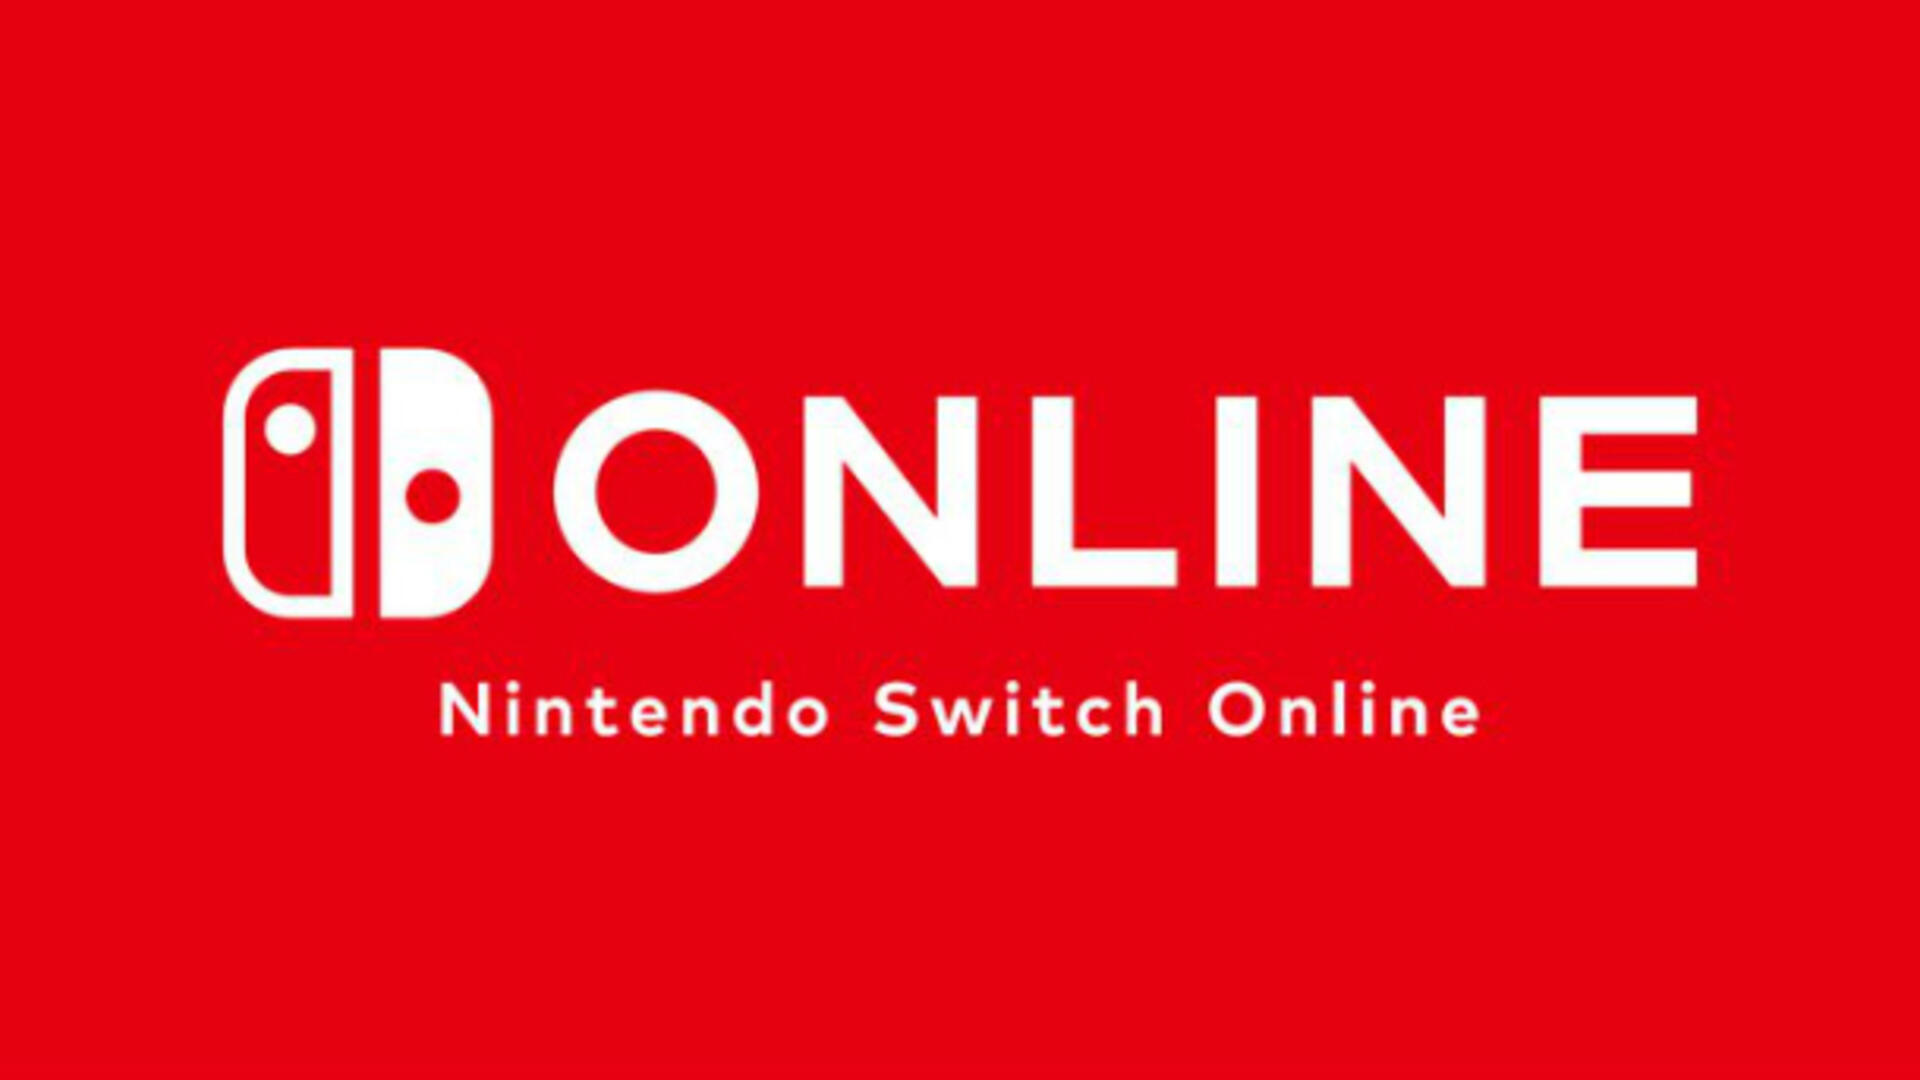 Nintendo Switch Online Sounds Like a Hassle, Actually